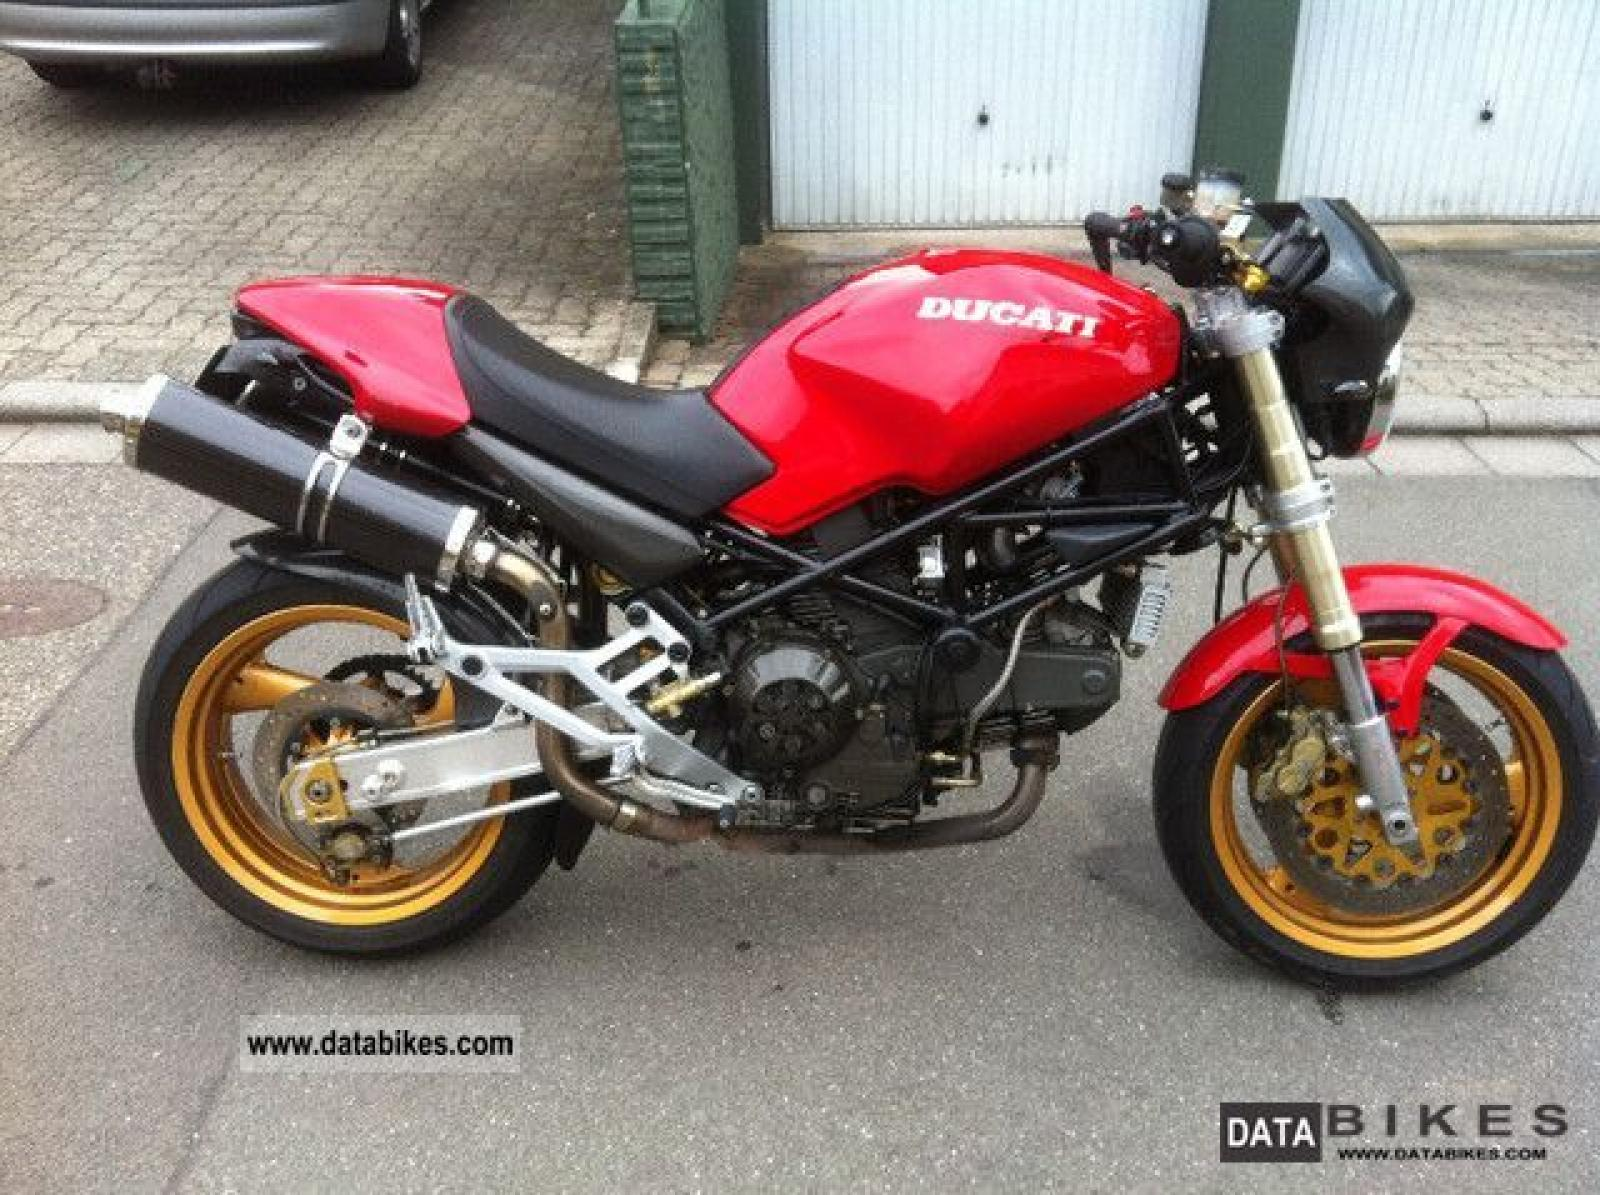 Ducati 900 Monster S 1998 images #78786